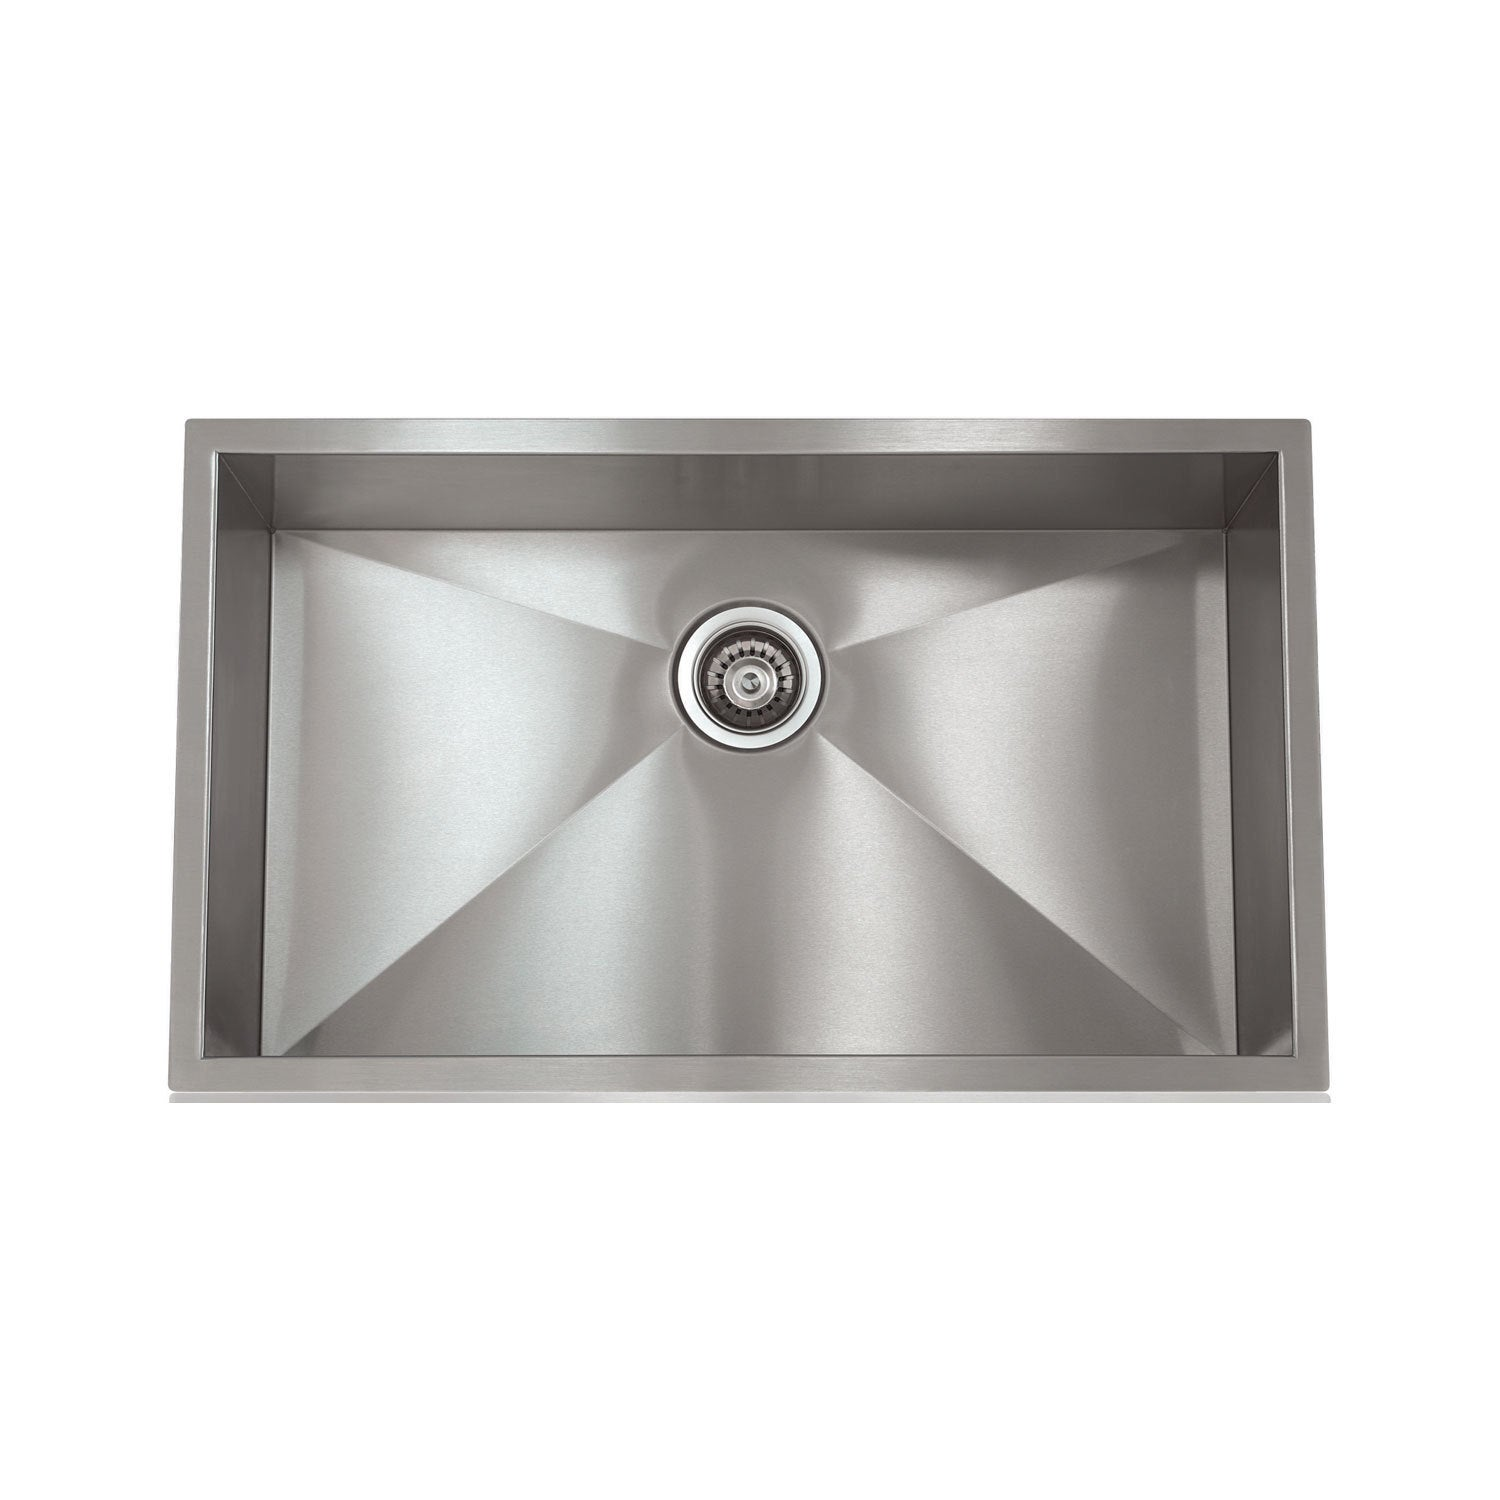 Ordinaire Shop Zero Radius Stainless Steel 28 Inch X 18 Inch Sink   Free Shipping  Today   Overstock   12113494